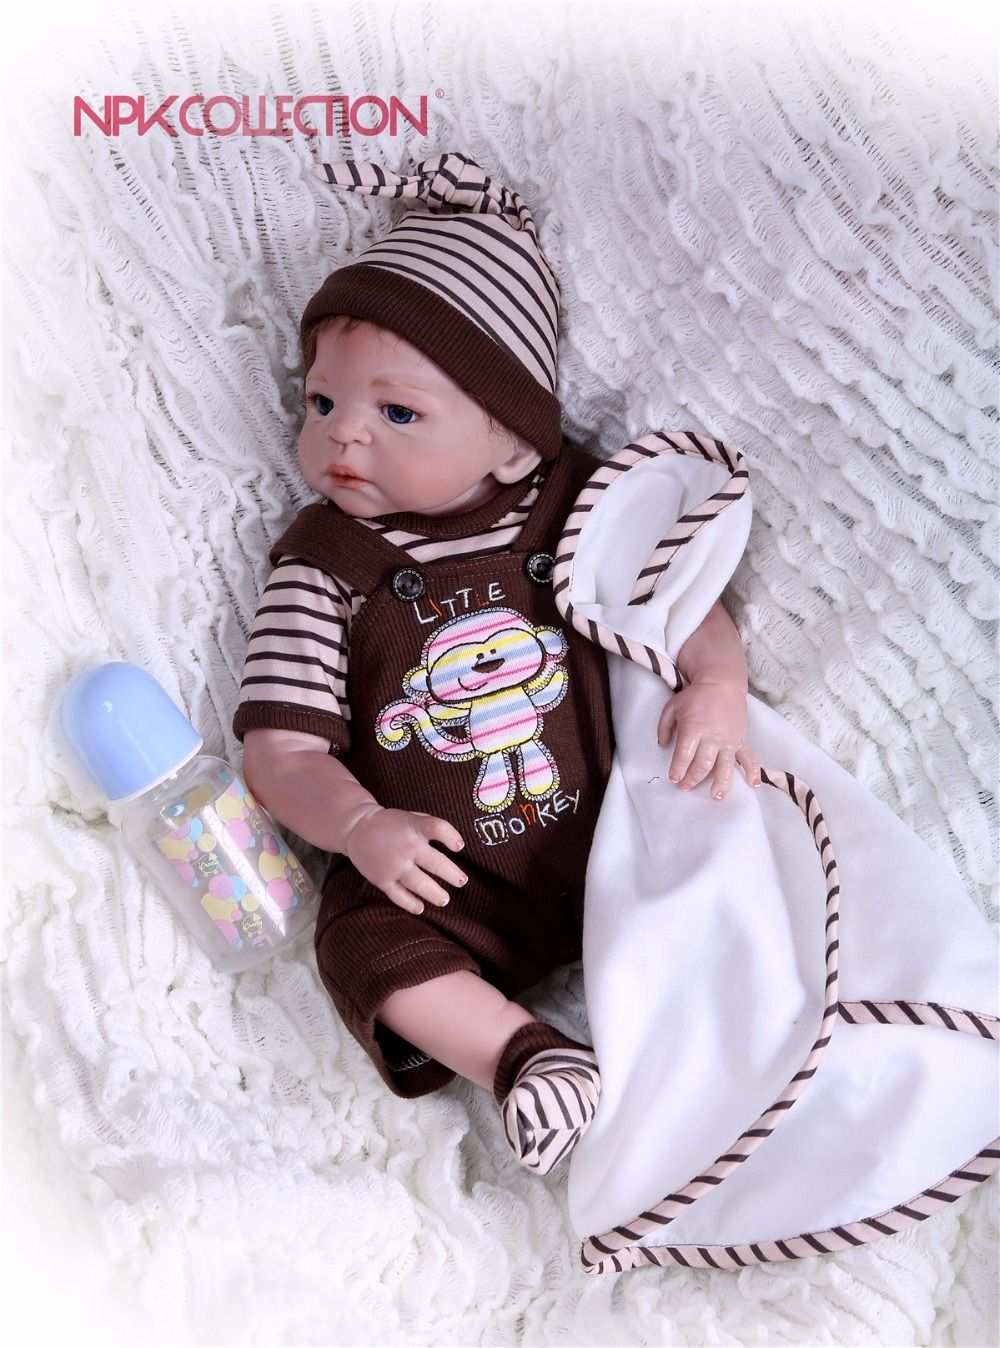 NPKCOLLECTION 2018 New design Doll Full Silicone Body Lifelike Reborn Prince Doll Handmade Baby Toy hot sale Xmas Gifts